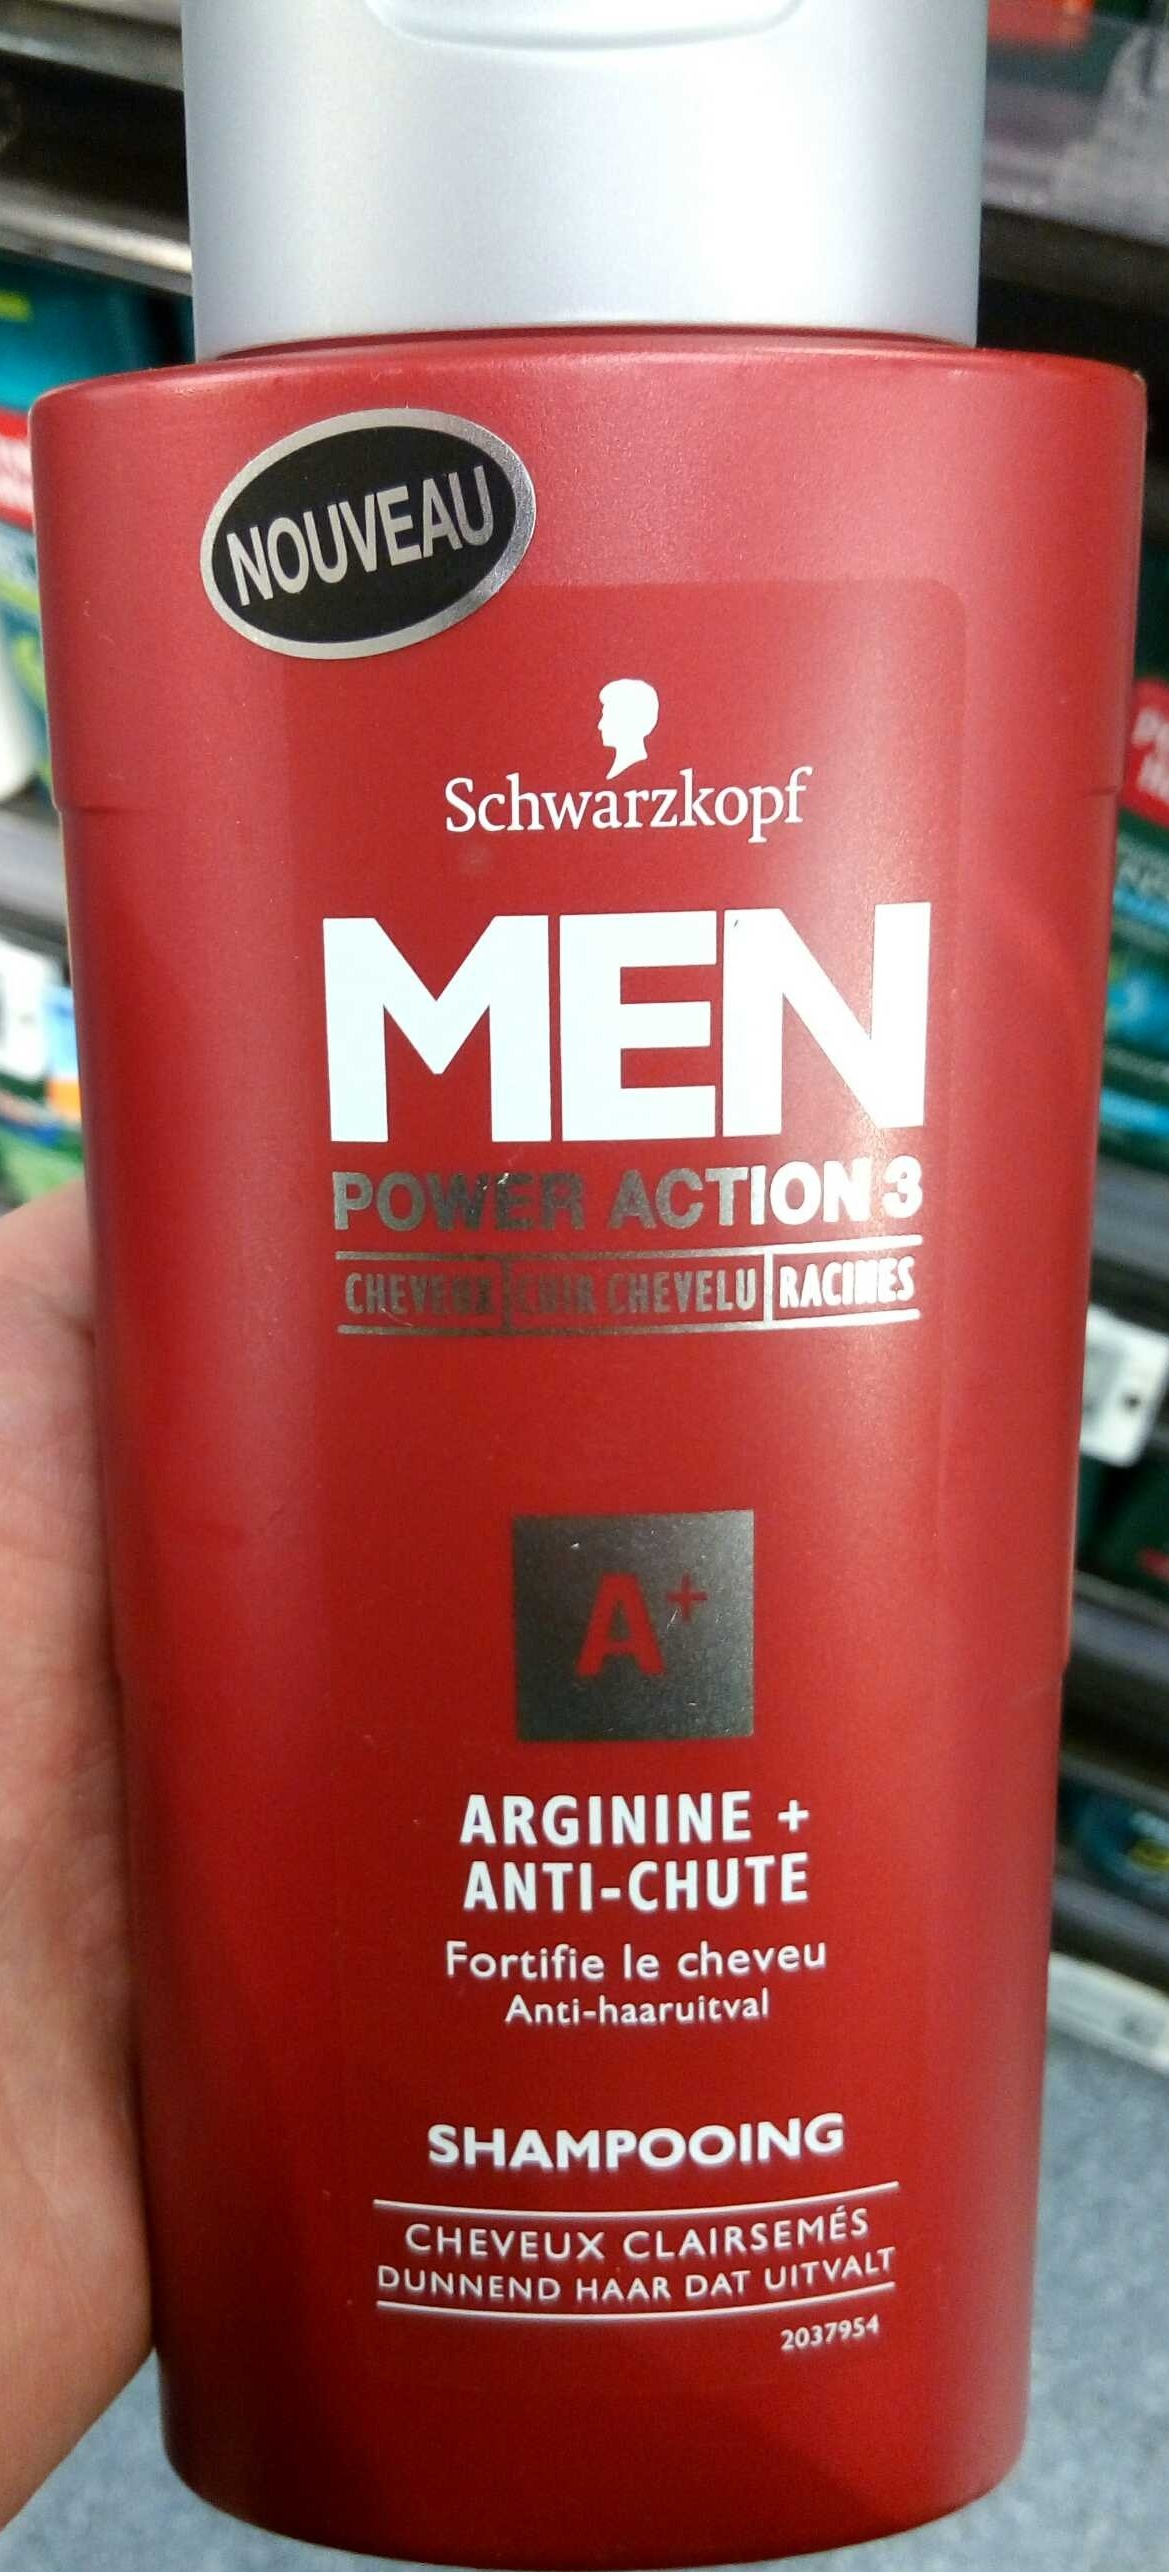 Men Power Action 3 Arginie + Anti-chute - Product